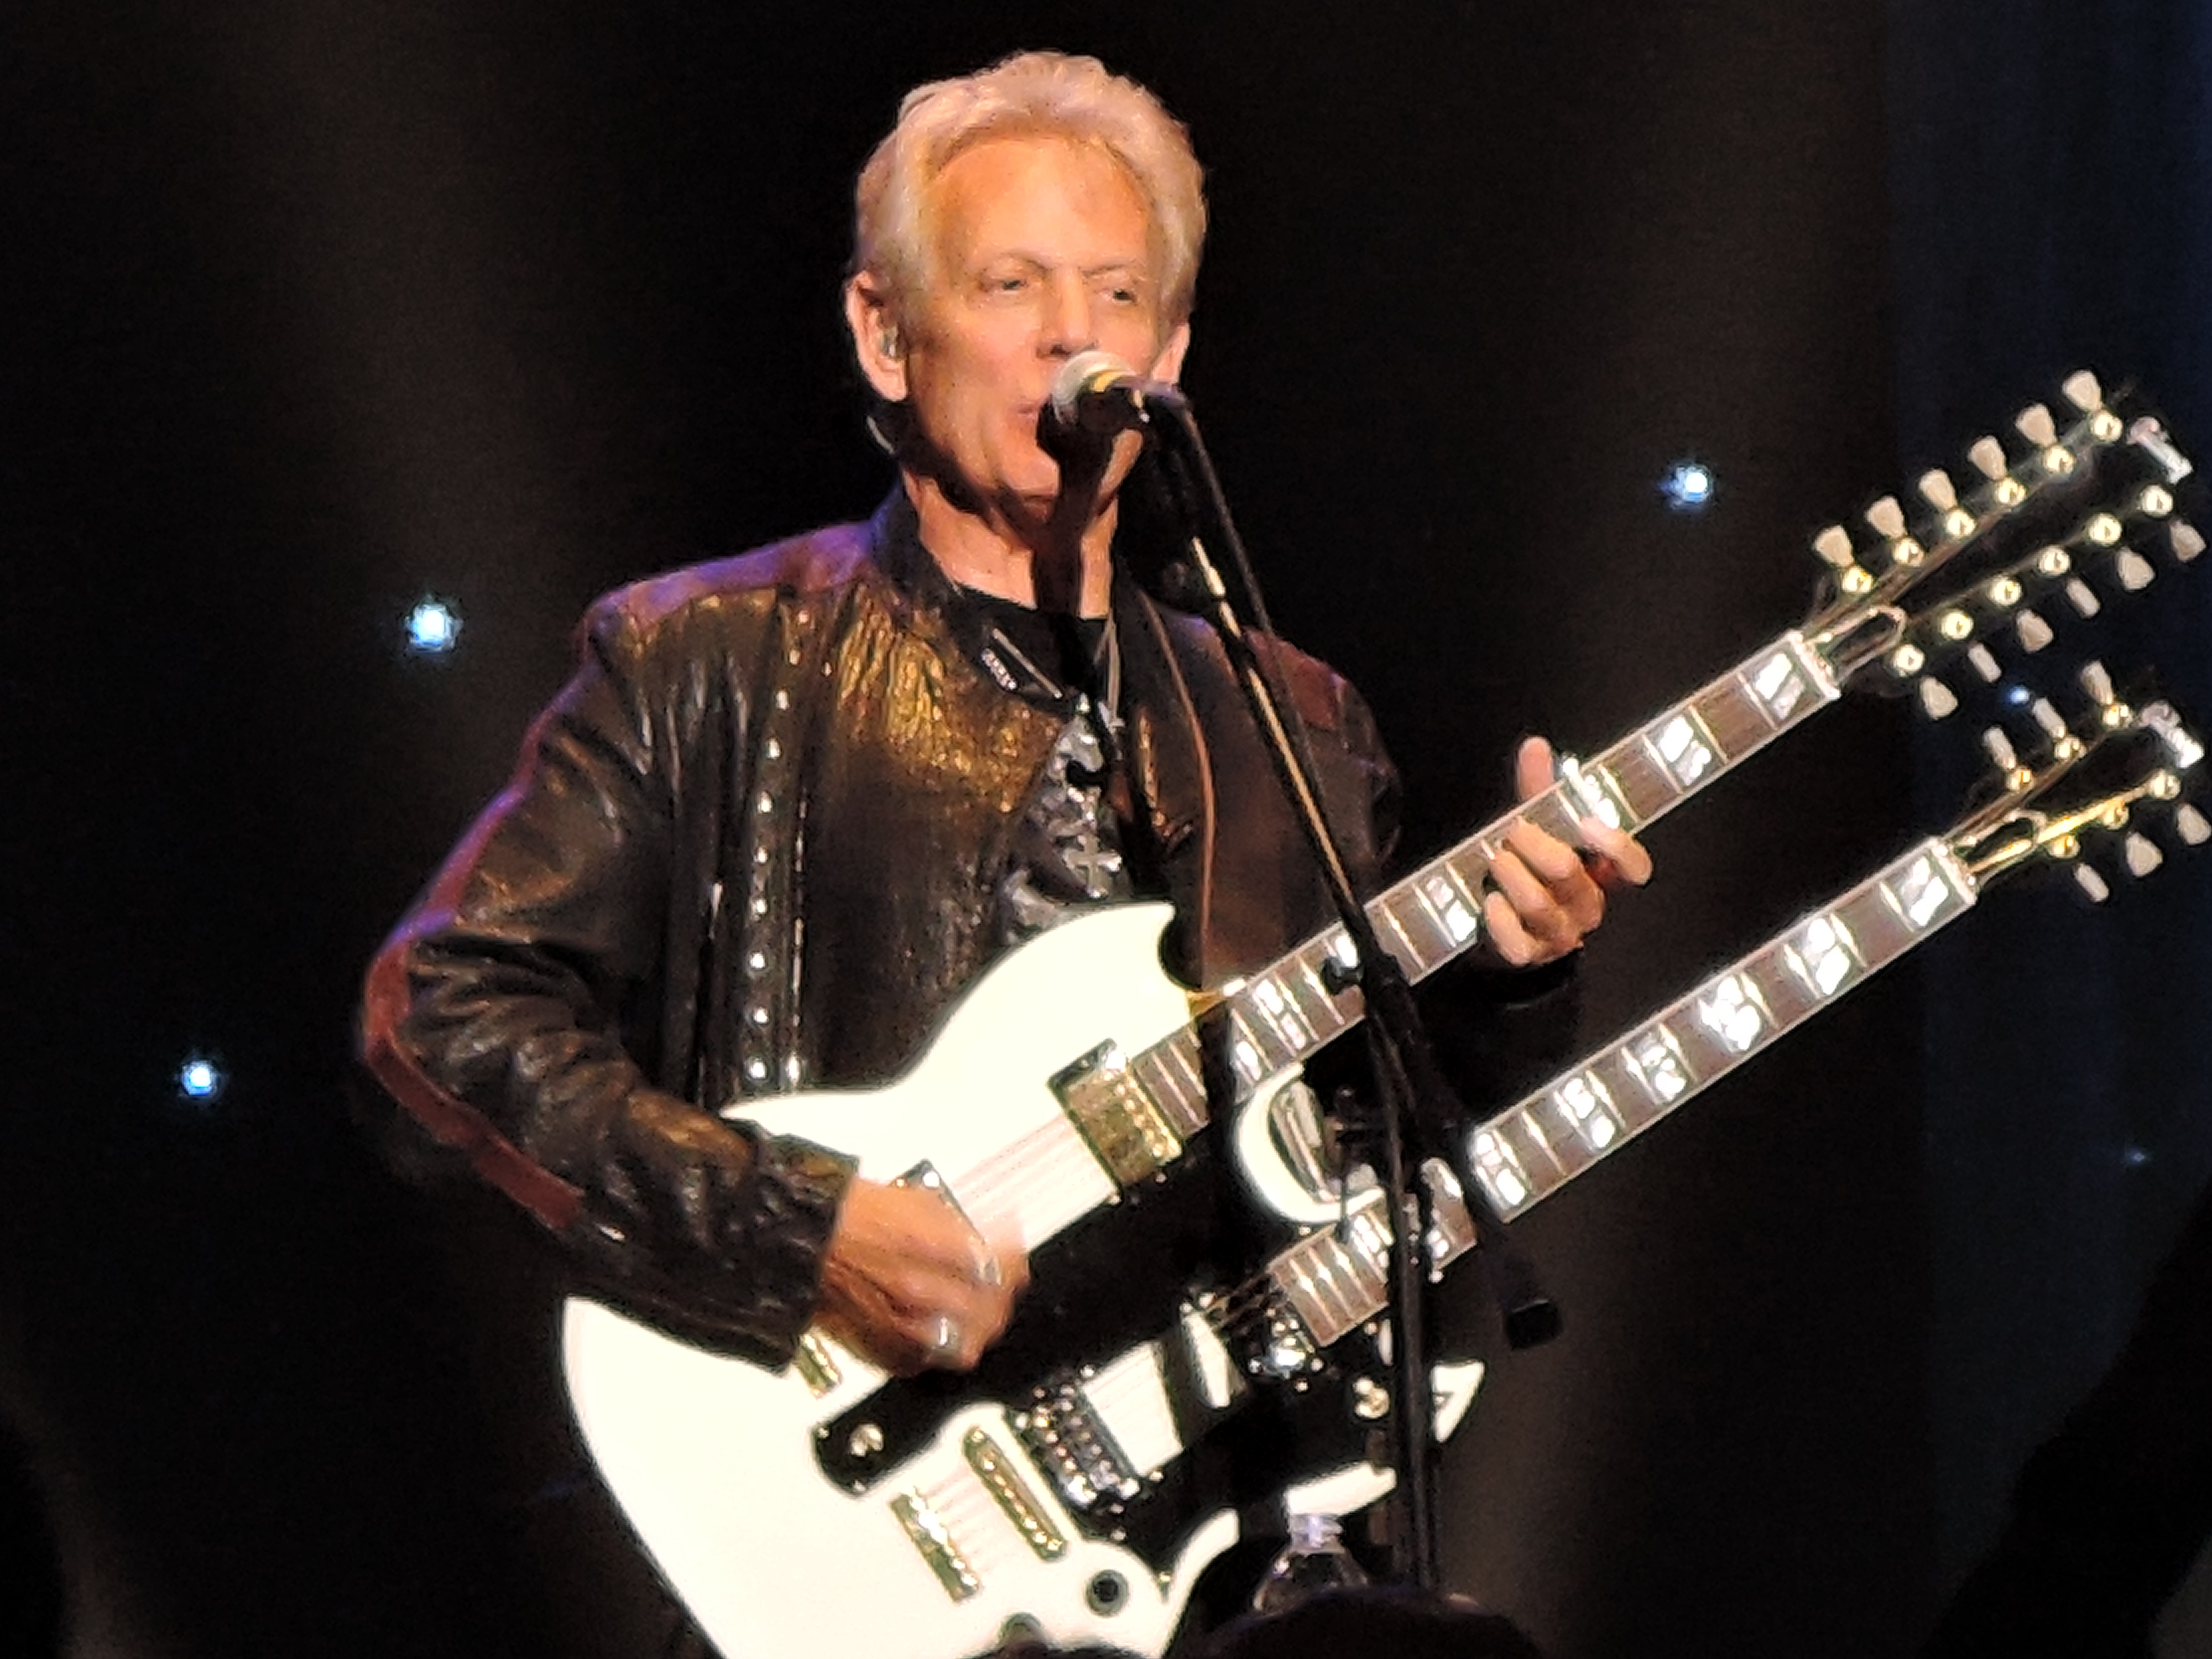 Ex Eagles Guitarist Don Felder Welcomes Us To His Own Hotel California The Vinyl Dialogues Blog